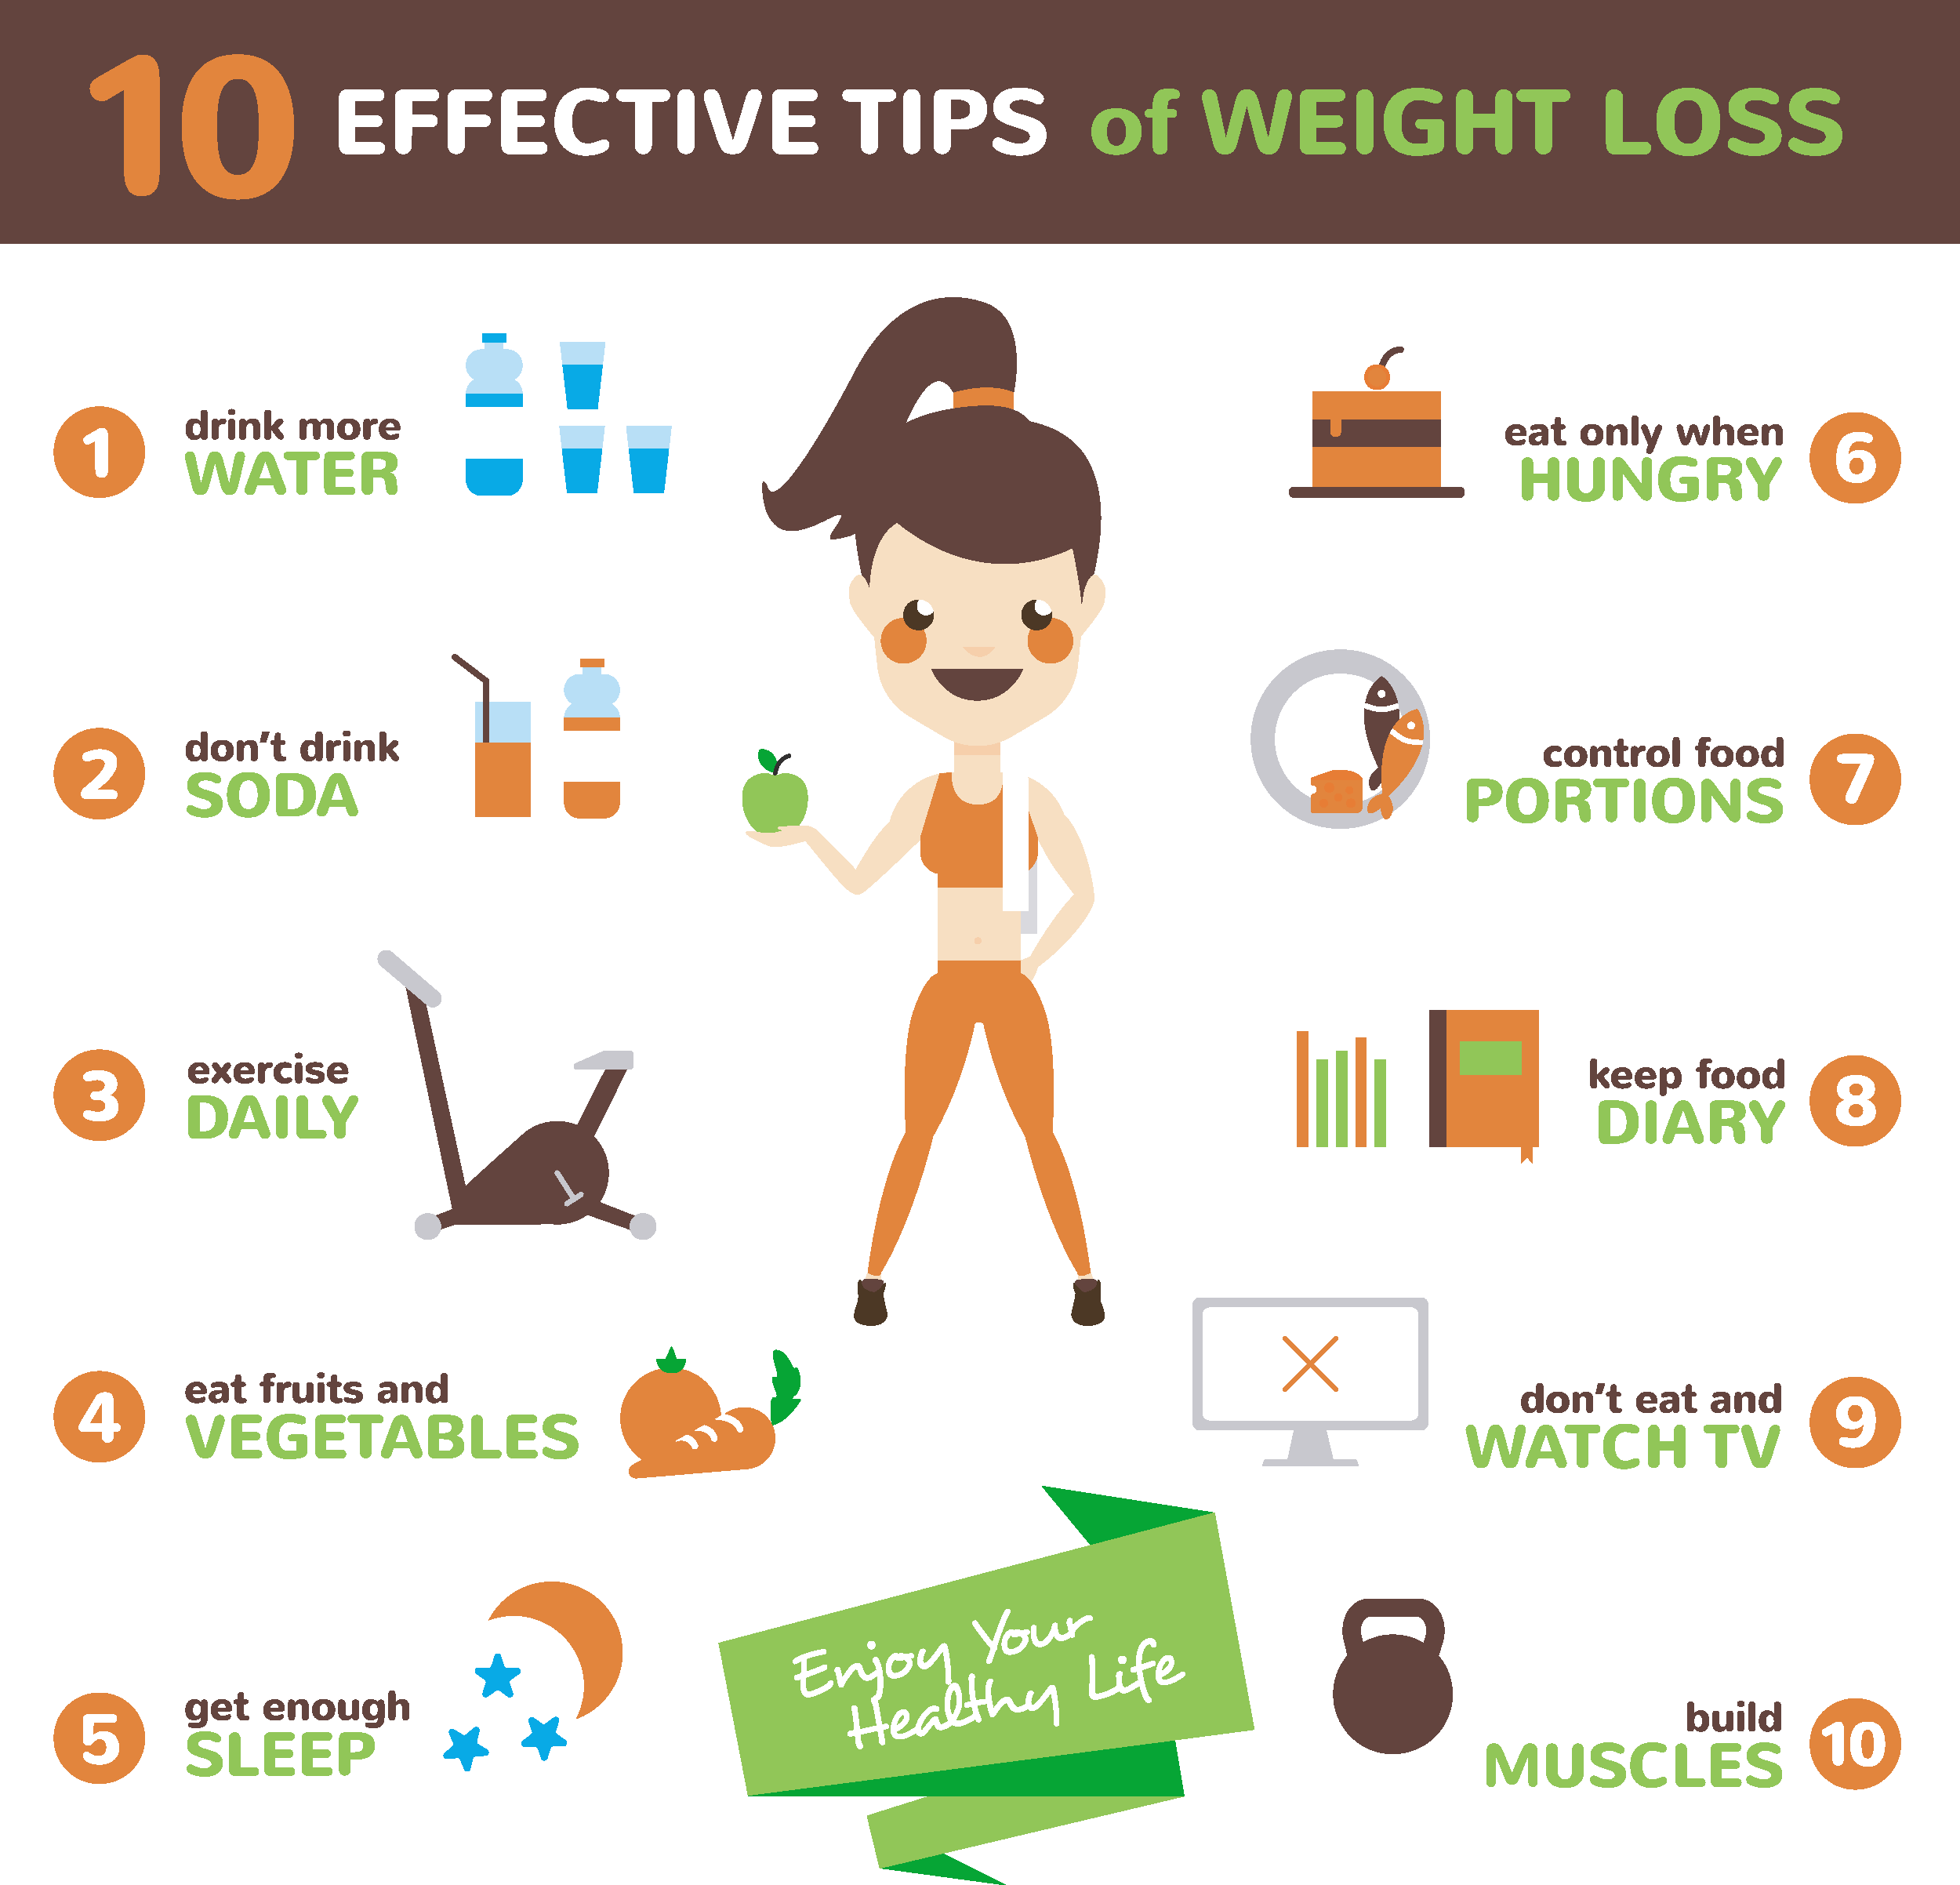 10-effective-tips-of-weight-loss